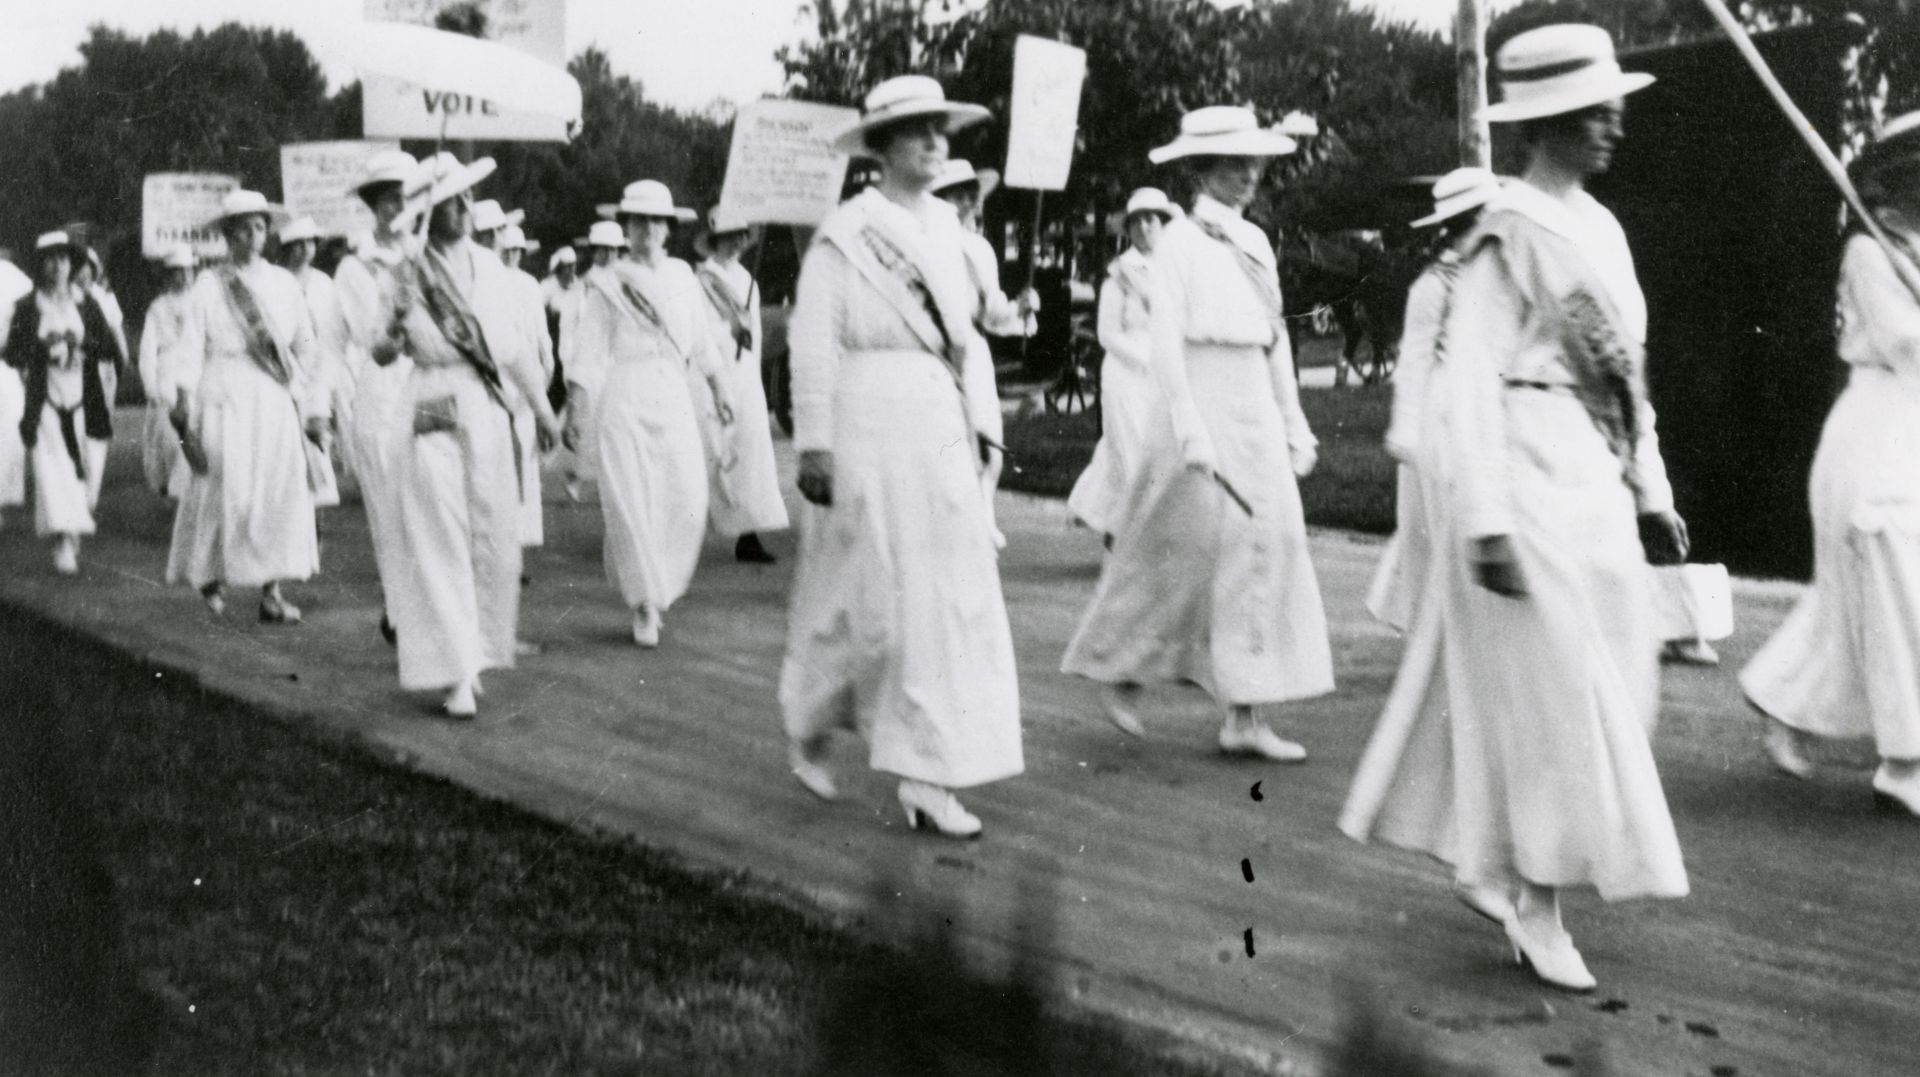 In 1913, Mrs. Anne Dallas Dudley led a march from the Tennessee capital to Centennial Park. Photo courtesy of Pretzel Pictures.